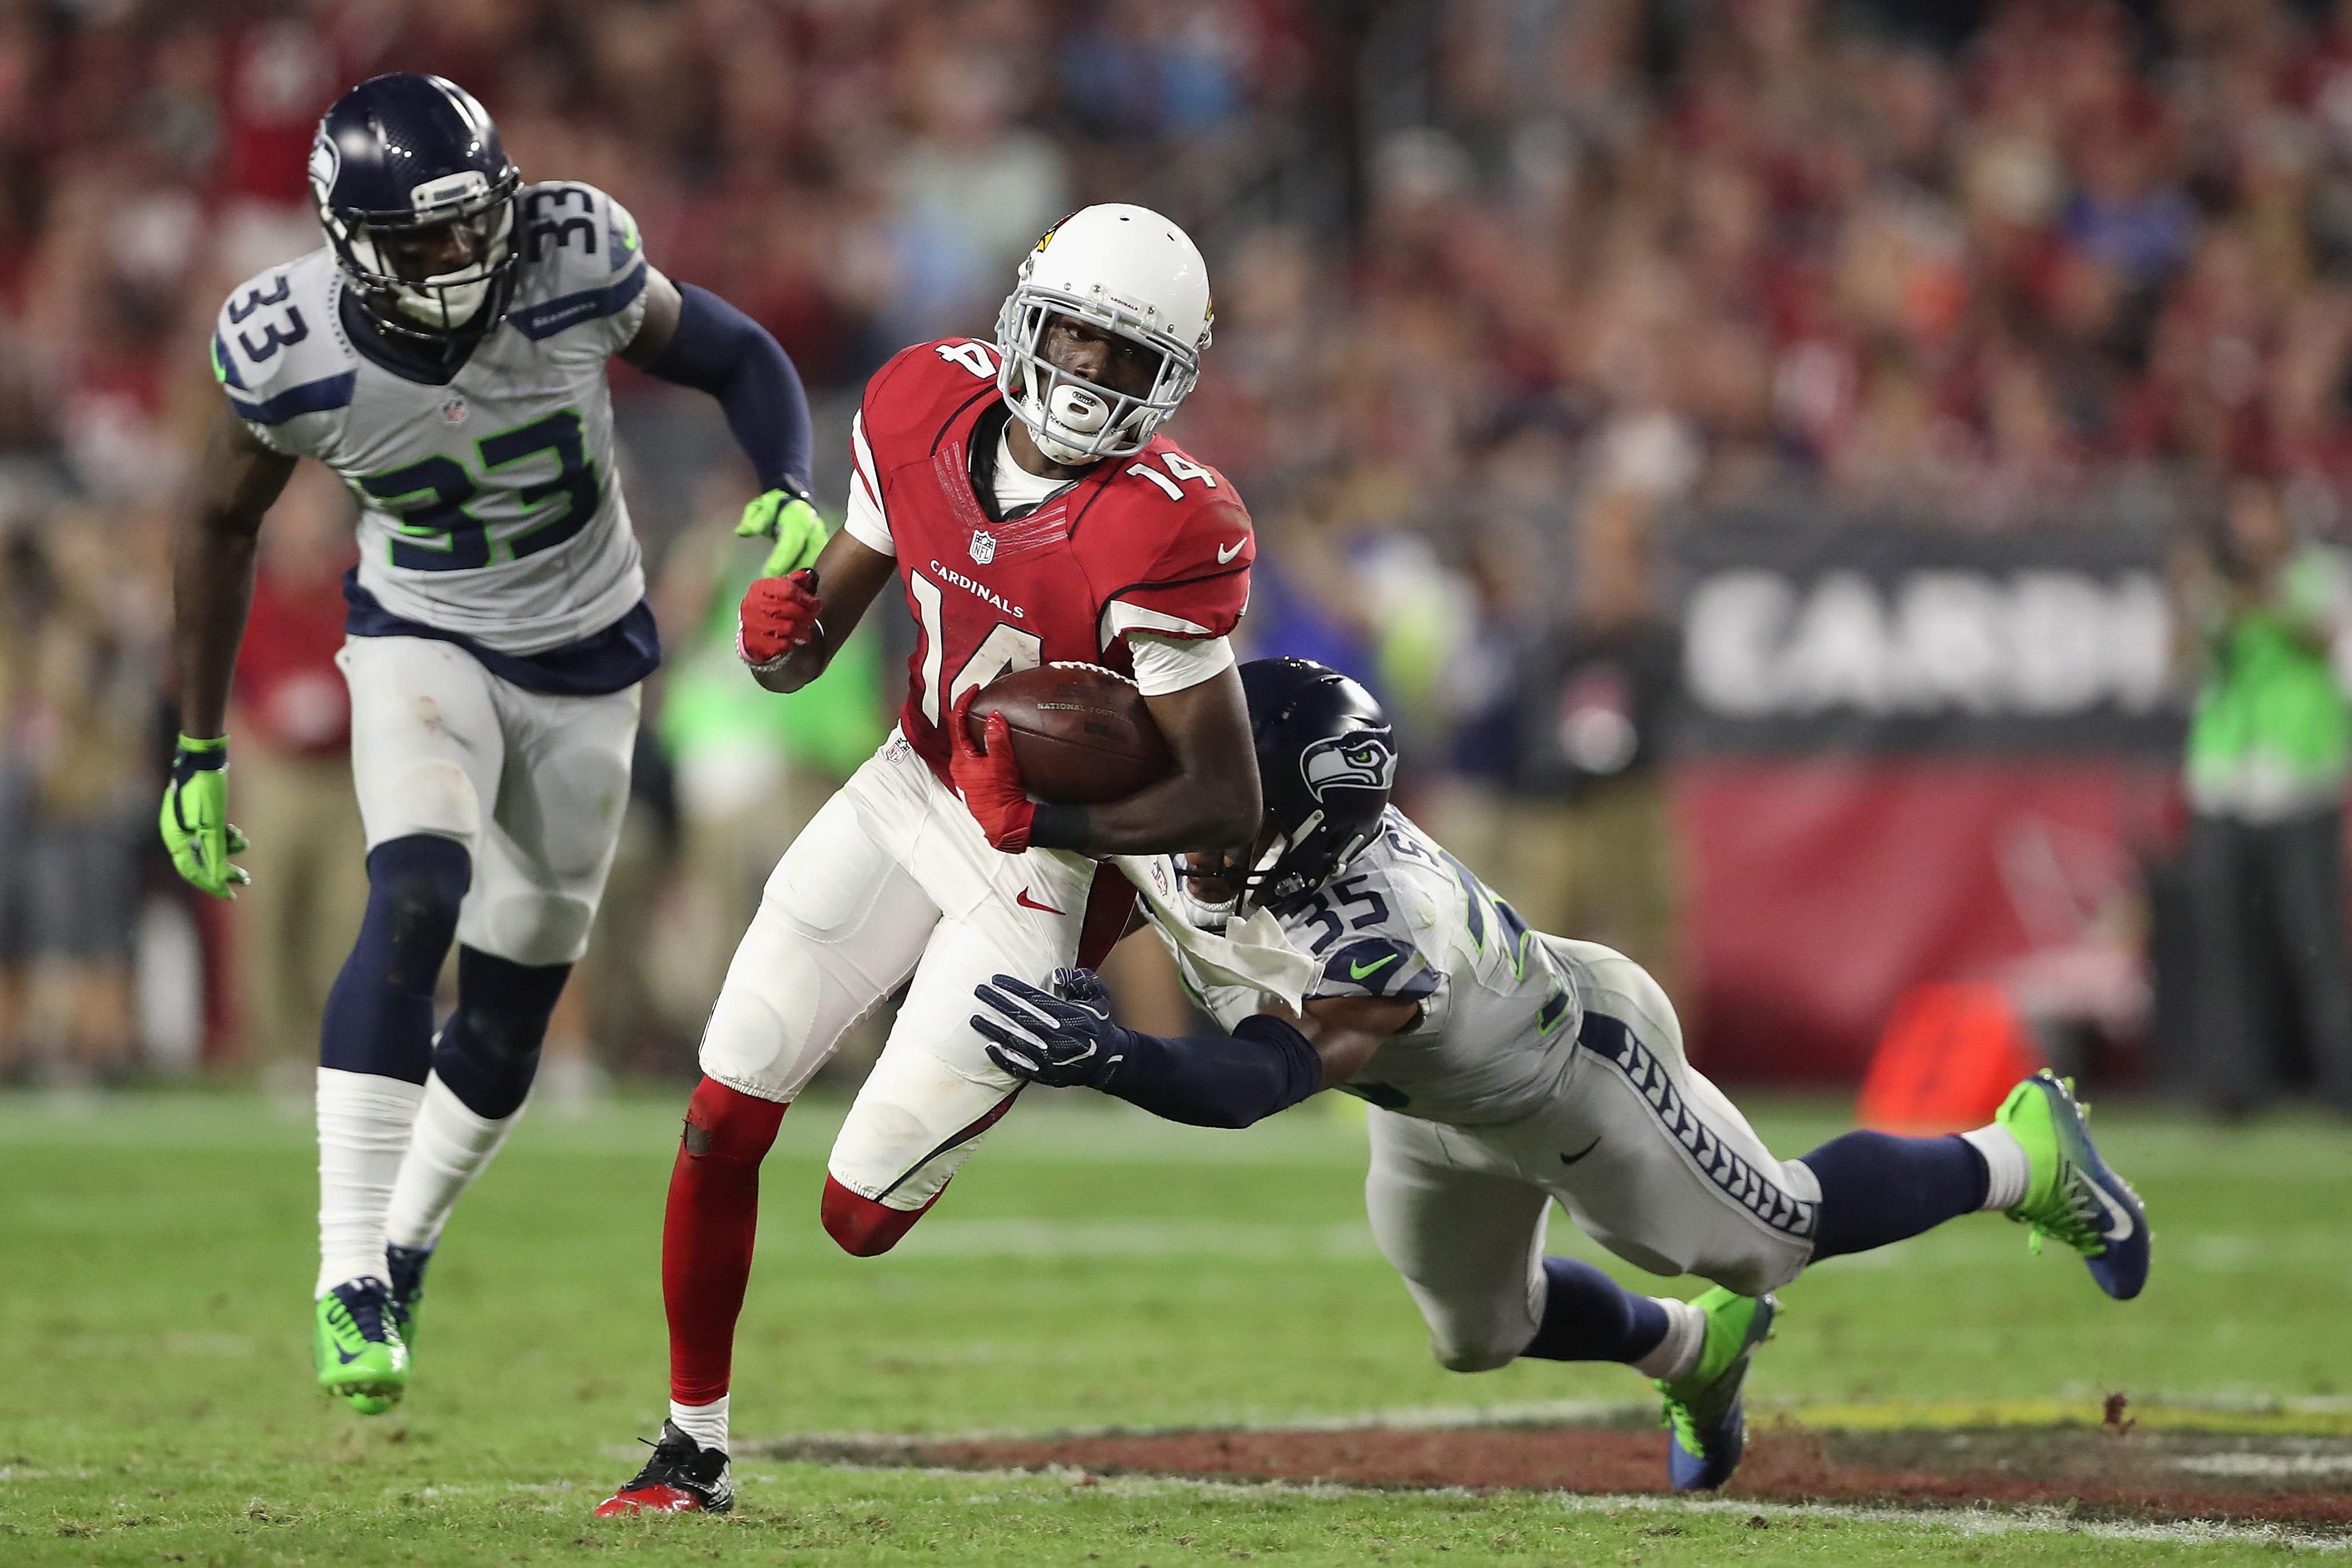 Wide receiver J.J. Nelson #14 of the Arizona Cardinals runs with the football after a reception past cornerback DeShawn Shead #35 of the Seattle Seahawks during the NFL game at the University of Phoenix Stadium on October 23, 2016 in Glendale, Arizona. (credit: Christian Petersen/Getty Images)